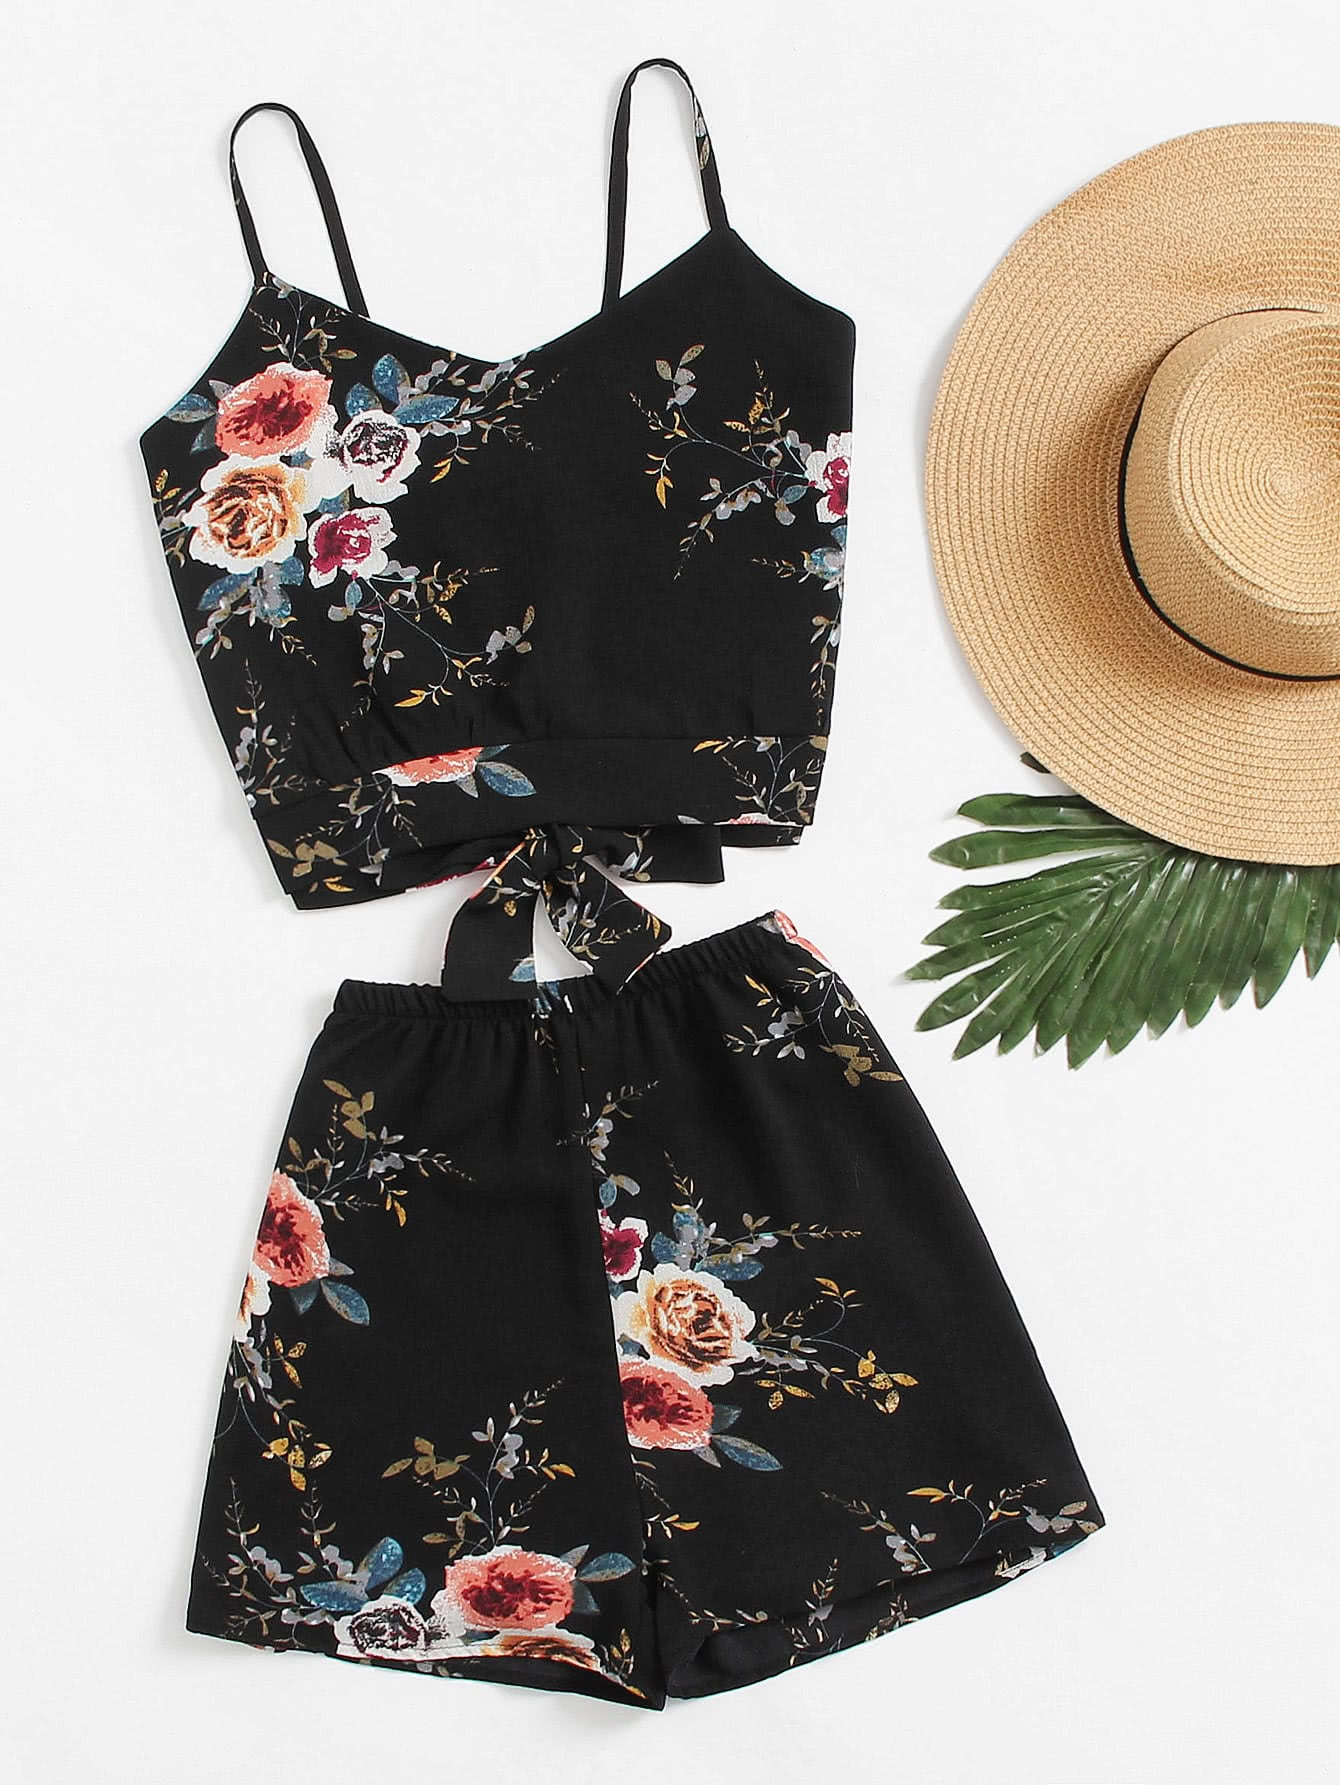 Floral Print Random Split Bow Tie Back Cami Top With Shorts lace panel criss cross bow tie back cami top with florals shorts